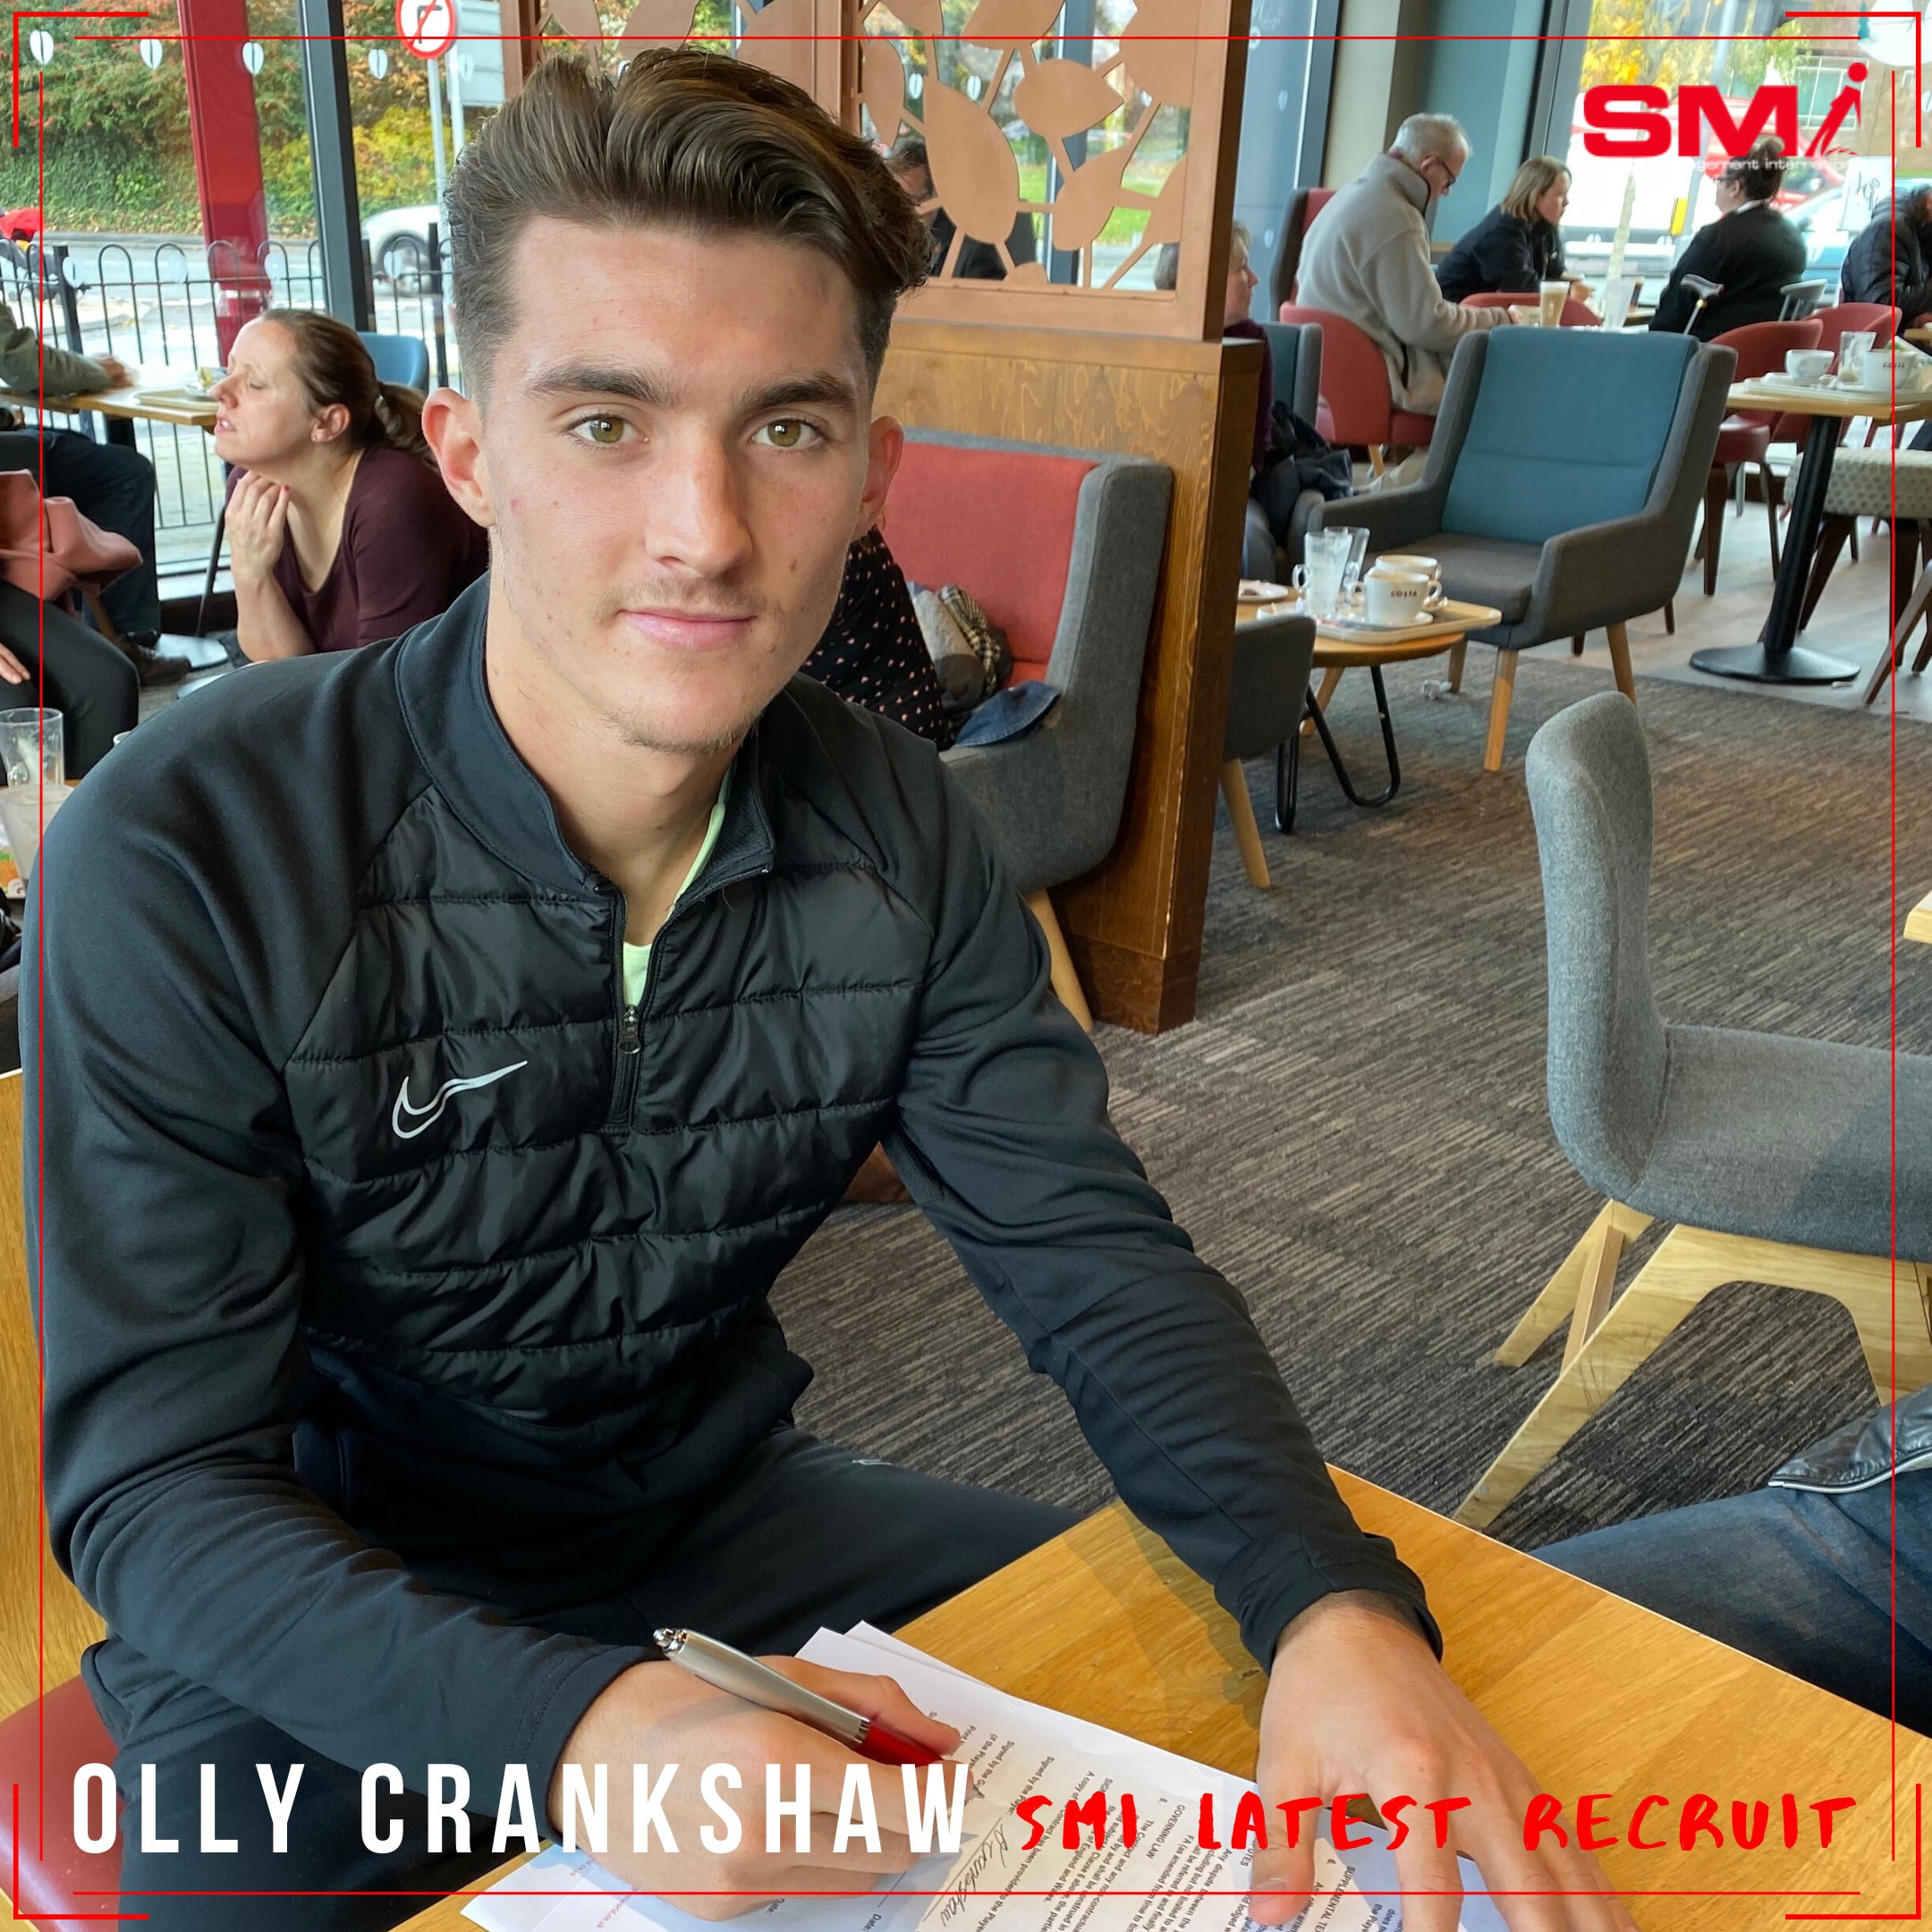 SMI newest recruit Olly Crankshaw